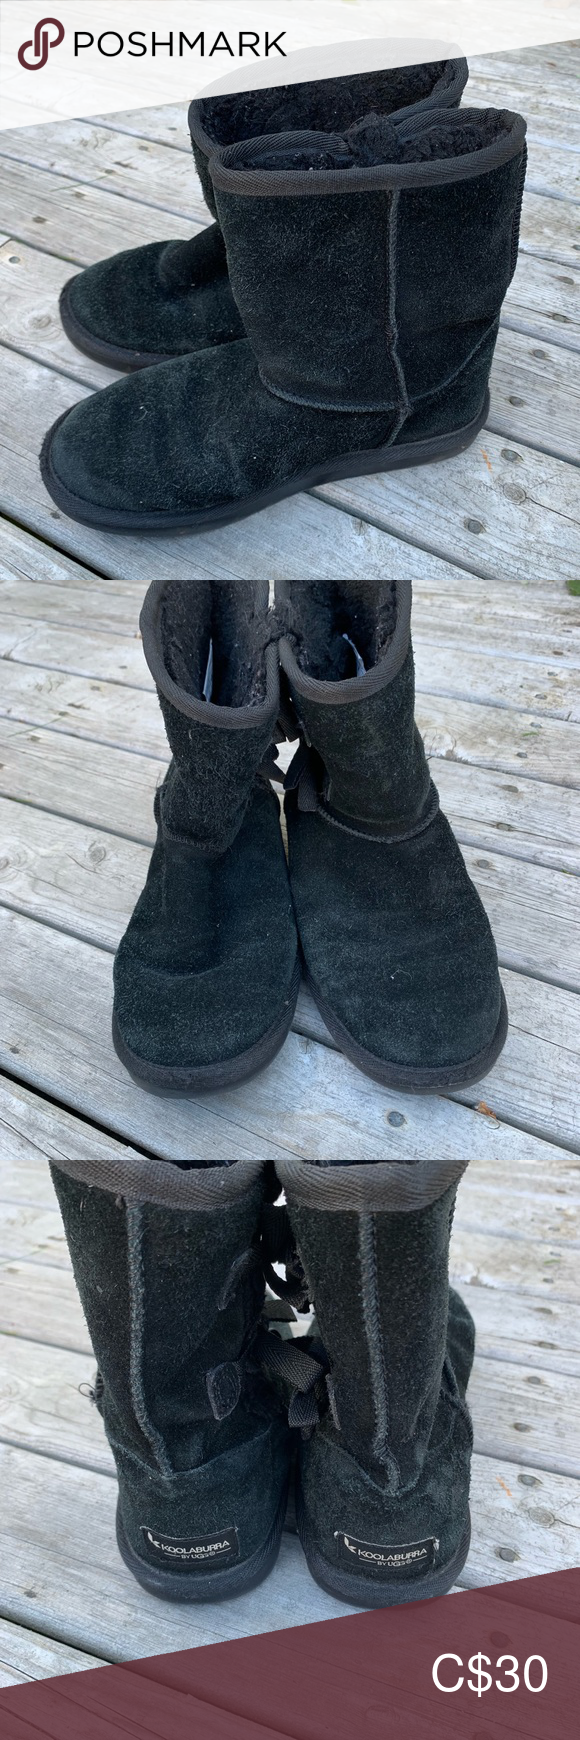 Ugg Koolaburra Girls 4 Short Black Boots Bow Sides Koolaburra by UGG  Girls 4 Short Black Boots Bow Sides In great, gently used condition Koolaburra Shoes Boots #uggbootsoutfitblackgirl Ugg Koolaburra Girls 4 Short Black Boots Bow Sides Koolaburra by UGG  Girls 4 Short Black Boots Bow Sides In great, gently used condition Koolaburra Shoes Boots #uggbootsoutfitblackgirl